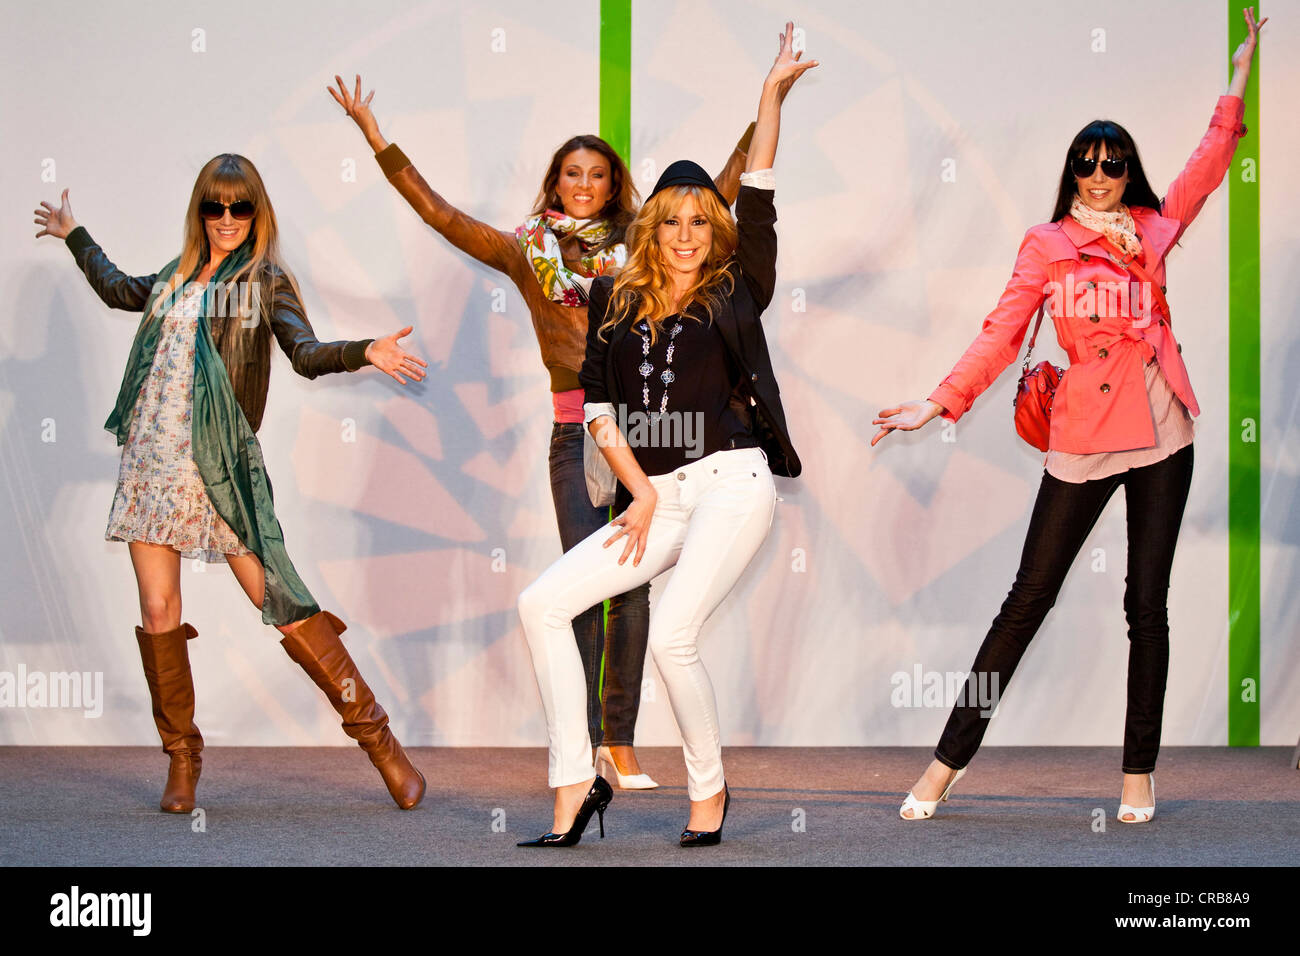 Four female models posing on stage - Stock Image